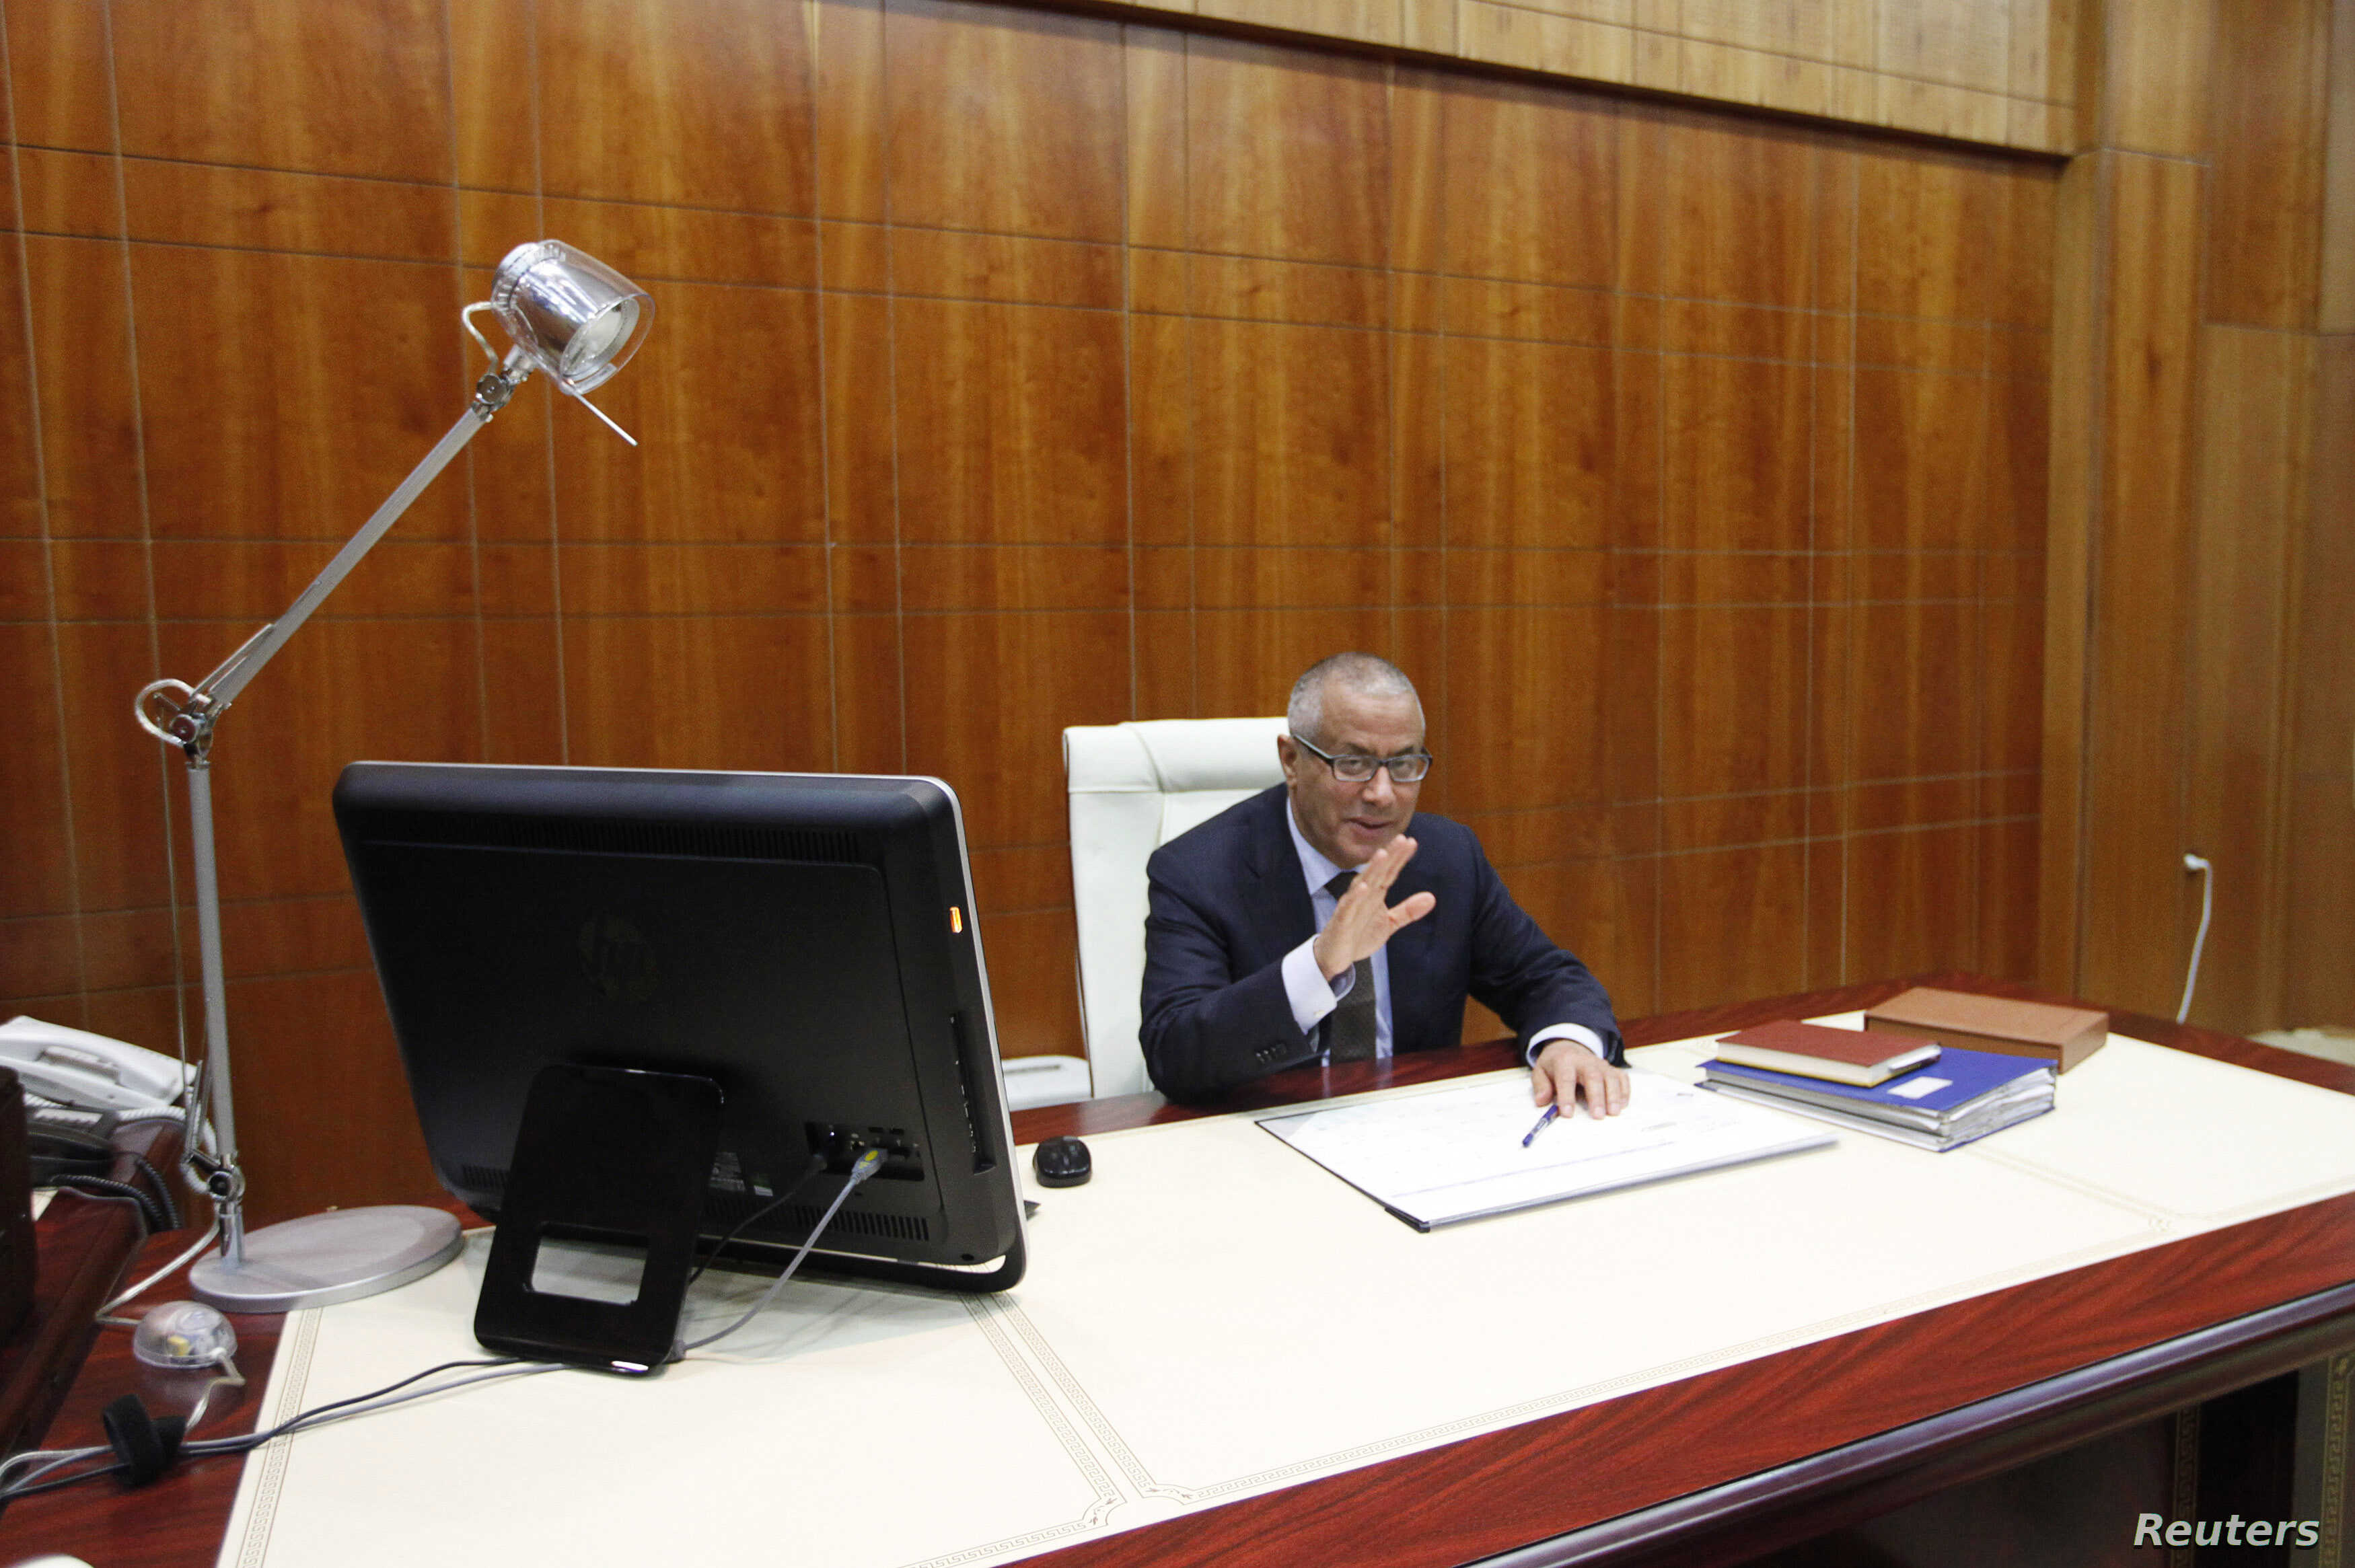 Libya's Prime Minister Ali Zeidan speaks during an interview with Reuters in Tripoli, March 10, 2014.